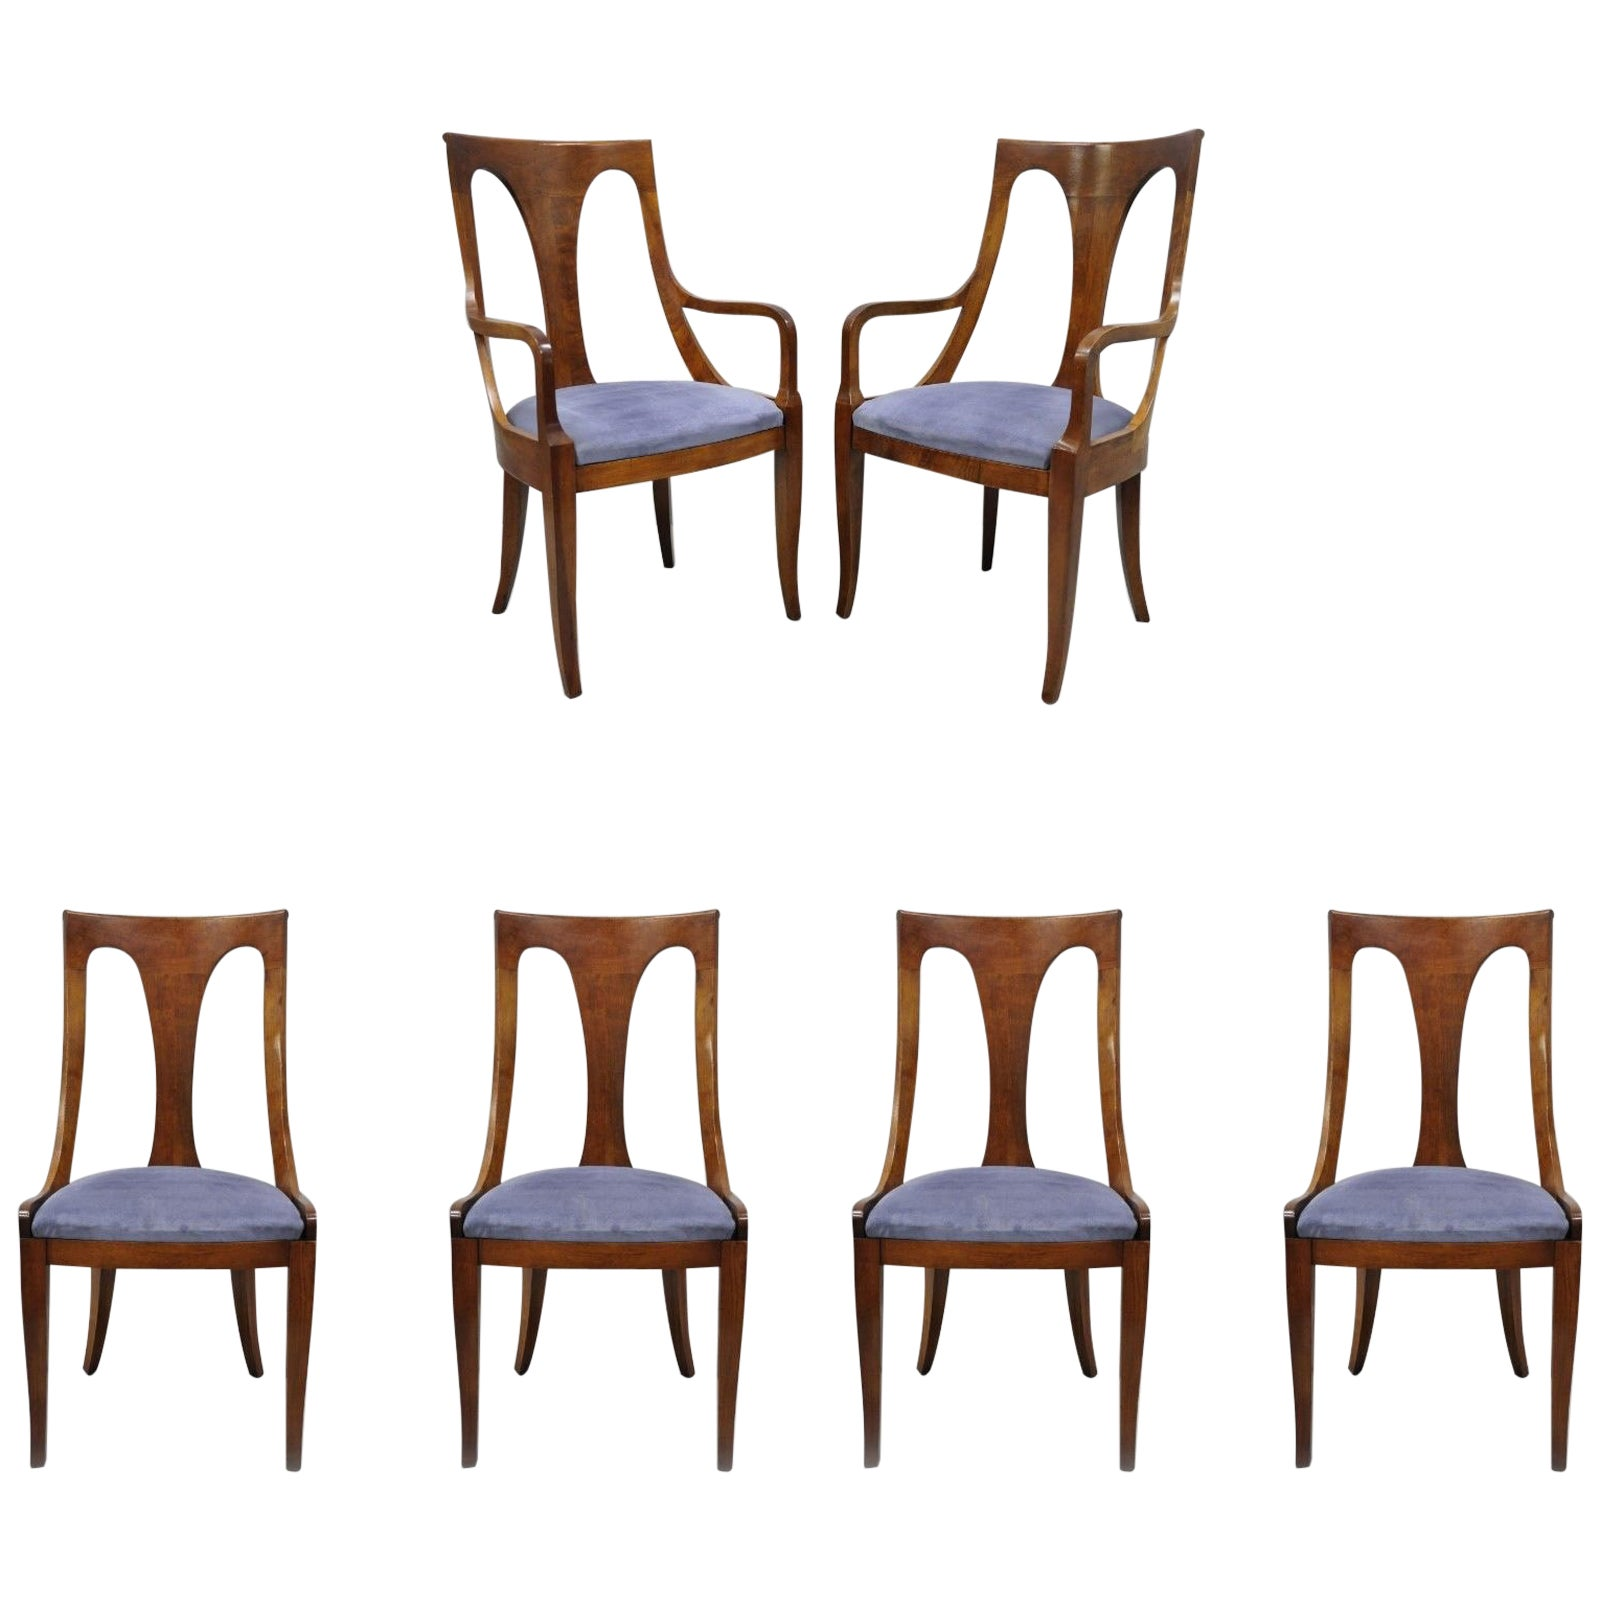 Six Walnut Regency Style Curved Back Dining Room Chairs With Saber Legs At 1stdibs